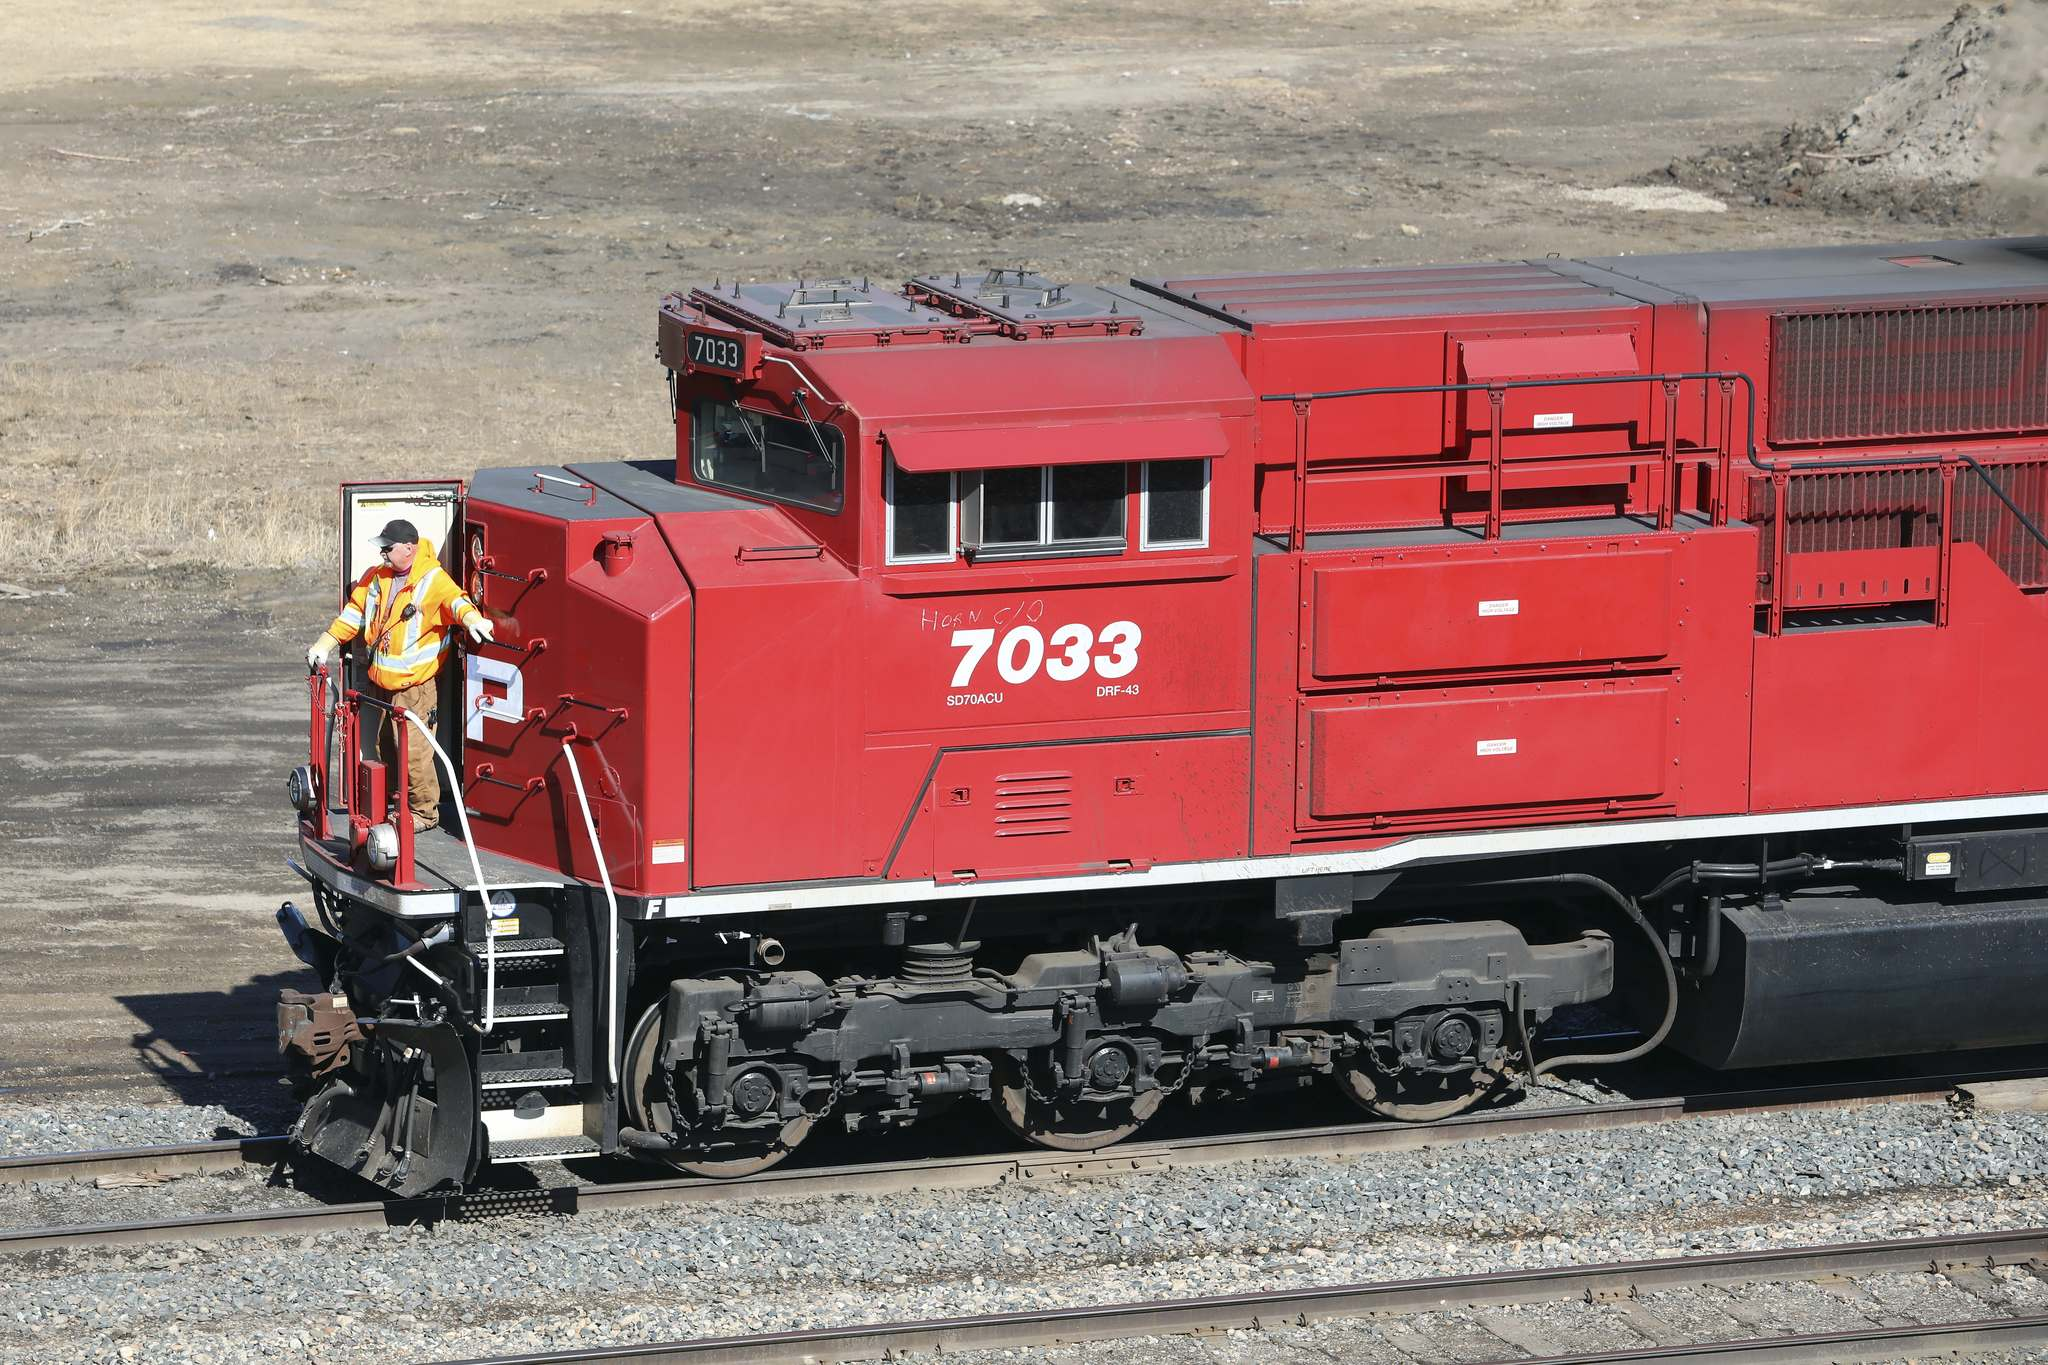 Tim Smith / The Brandon Sun The combined CP-Kansas City network would comprise 32,000 kilometres of track and link Canada, the U.S. and Mexico.